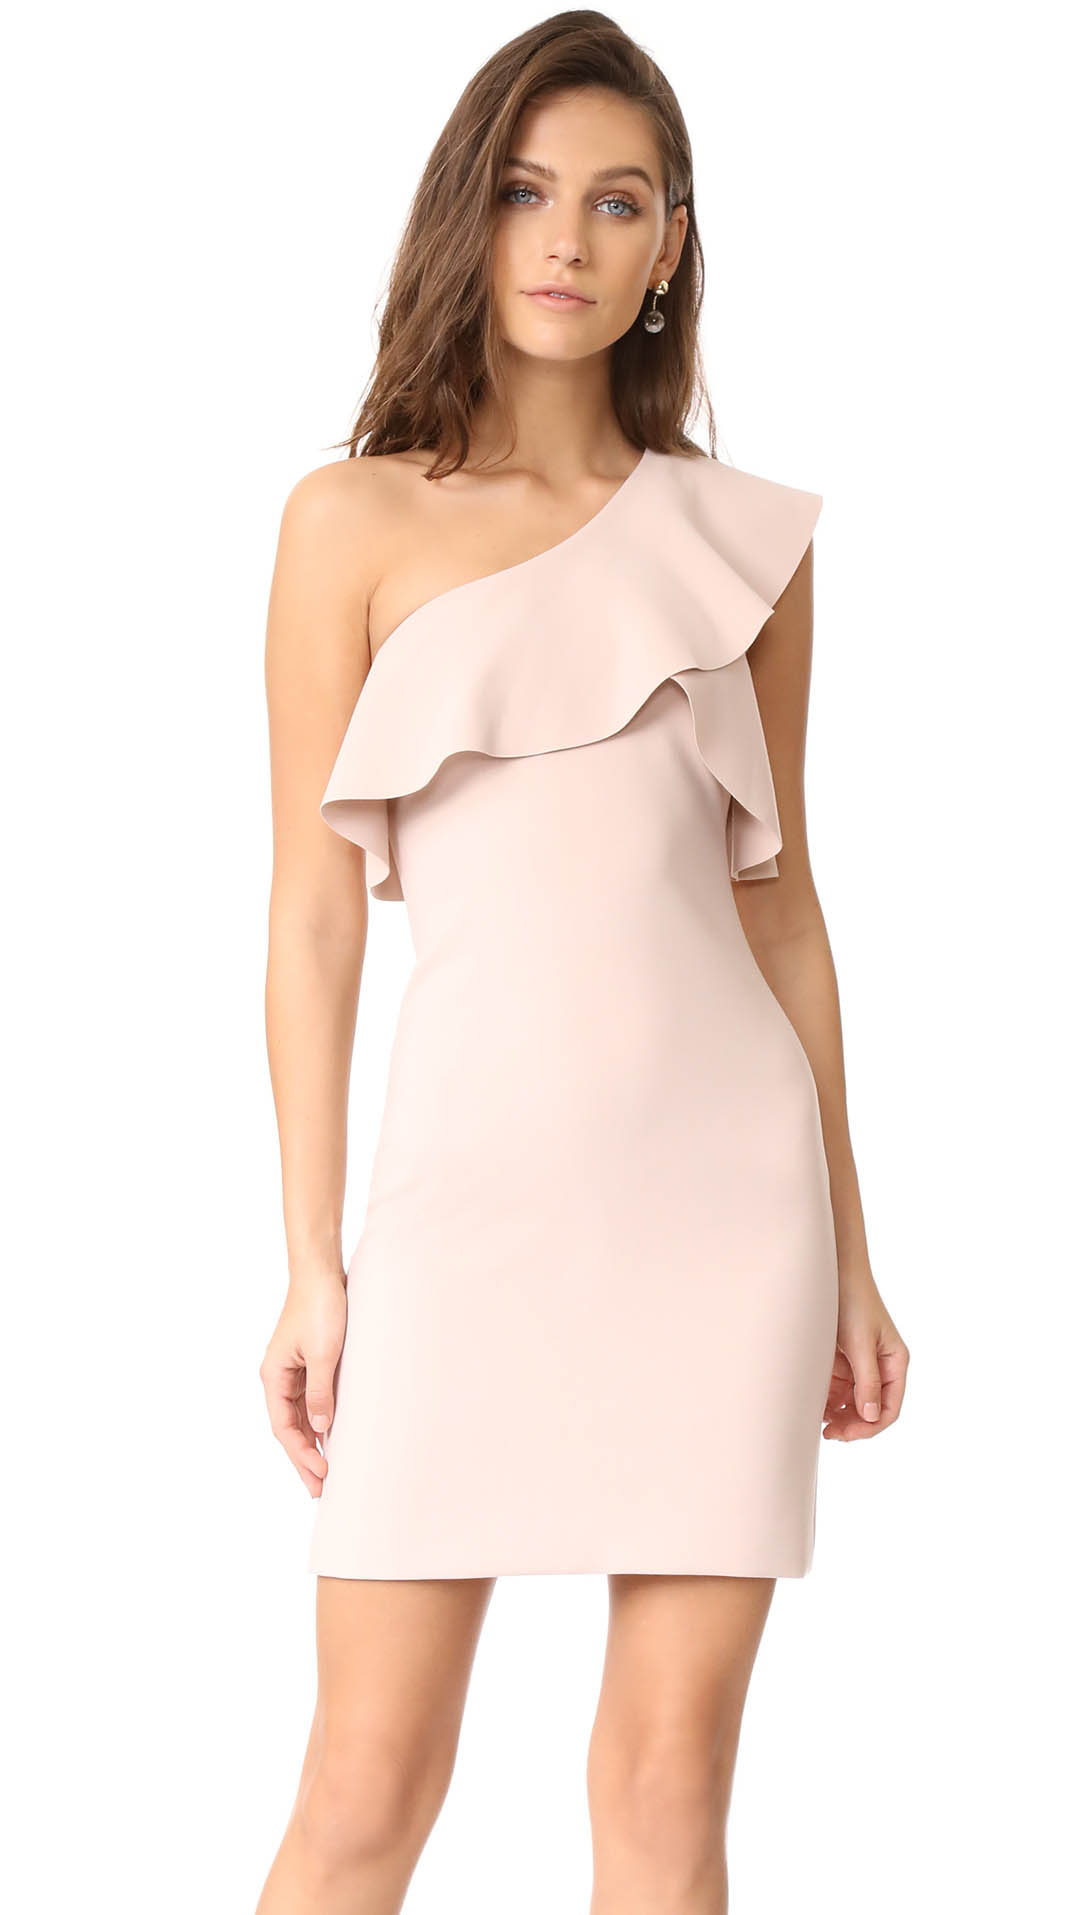 One Shoulder Dresses On Trend For Summer Wedding Guests 2017 Style